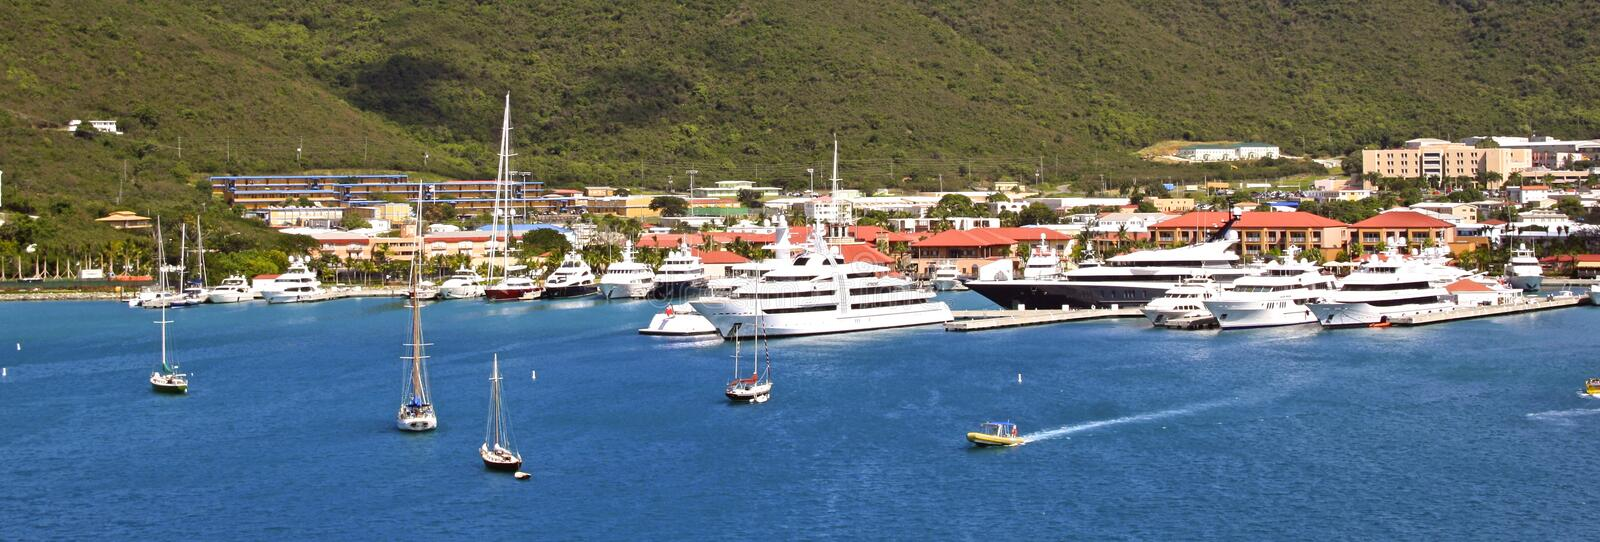 Panorama do porto em St Thomas, E.U. Virgin Islands foto de stock